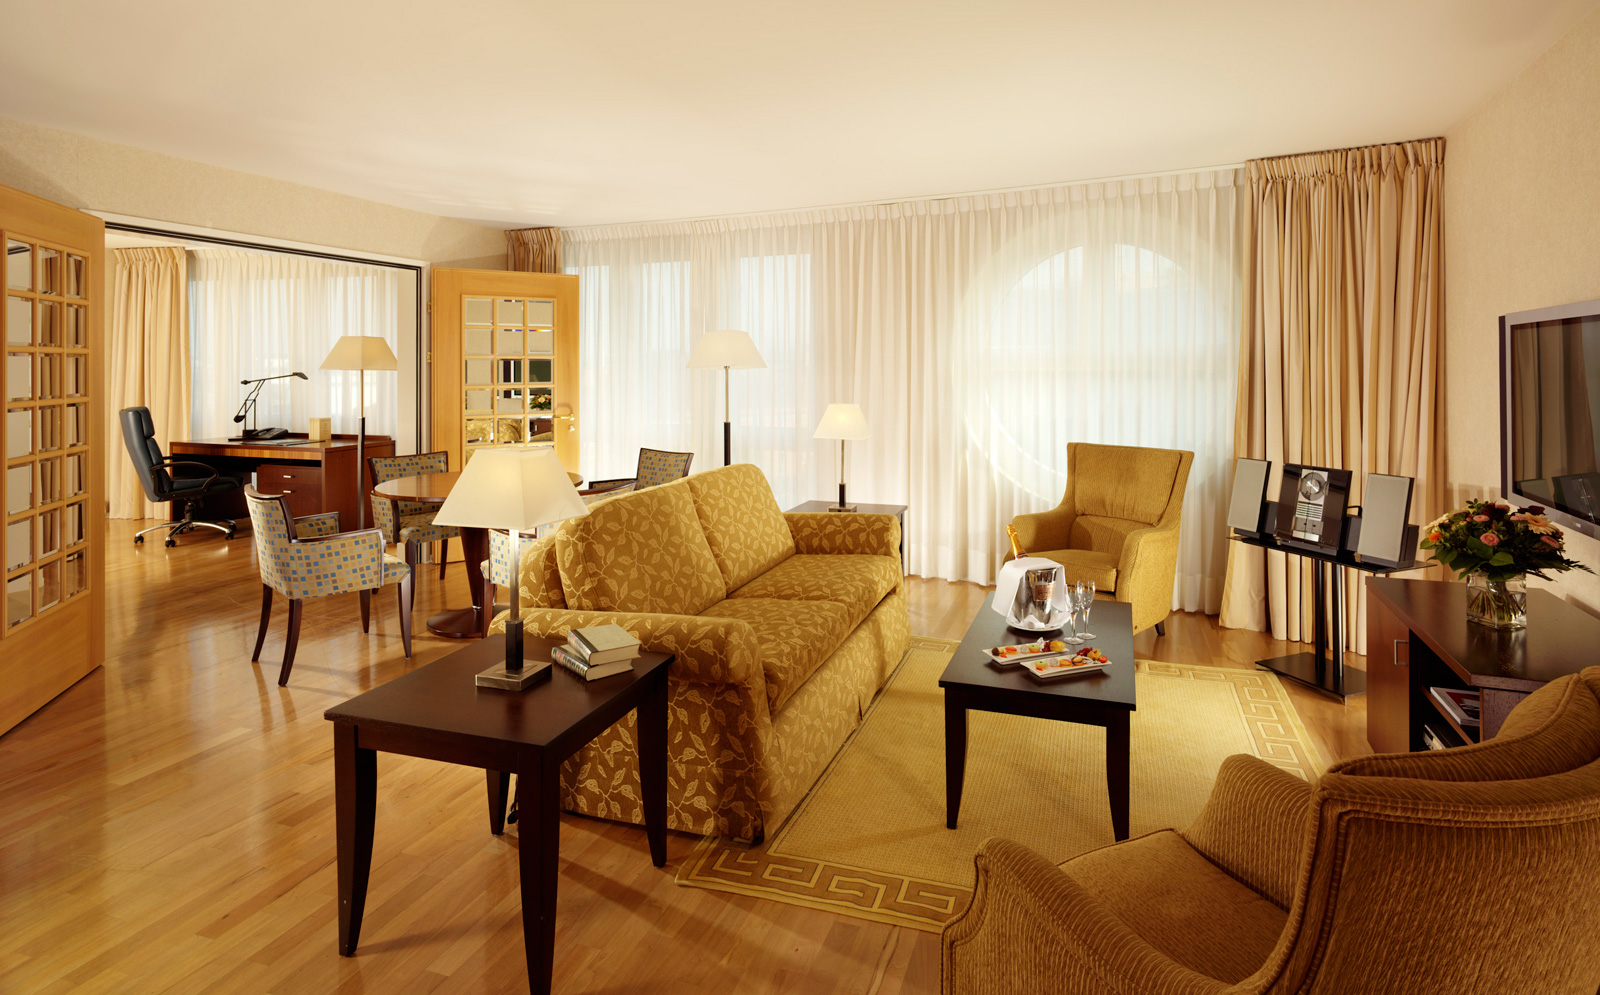 Presidential Suite at Swissotel Le Plaza, Basel